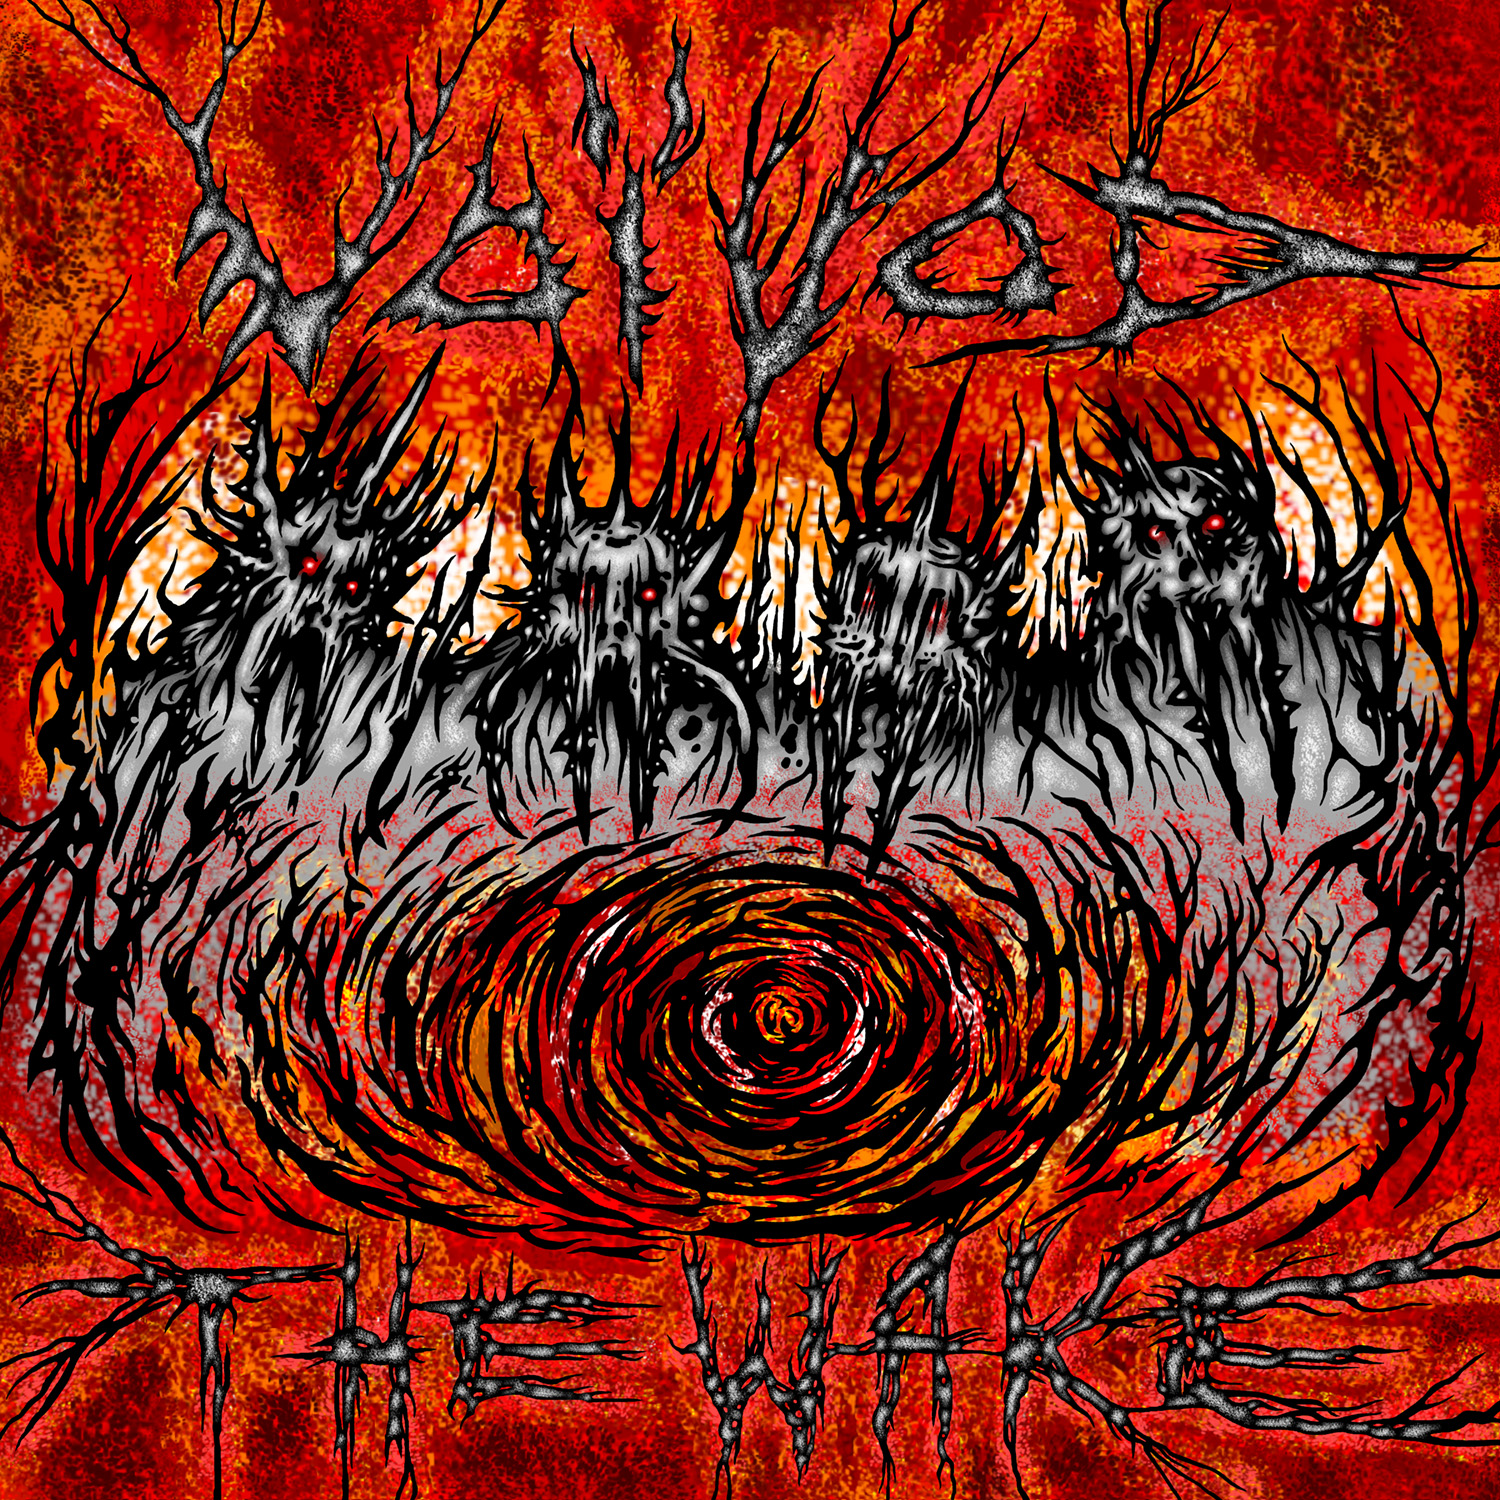 "1. Voivod - The Wake - Considering all the technicality that 2018 brought, it is only fitting that Voivod takes the crowning spot. Voivod are no amateurs - The Wake is their 13th offering. What is amazing about this album is that after about a decade or so, Voivod are sounding less like a collection of people who play for Voivod and more like their former selves 20 years ago. Of course, their erstwhile future was highly uncertain when Piggy, their frontman, passed away tragically in 2005, but with Dan Mongrain (perhaps one of my favorite guitarists of all time!) stepping in and taking more of lead role over the last few years, Voivod are looking stronger and more consistent than ever. The Wake is thrashy, dissonant, psychedelic, schizophrenic, catchy, and technically, quite incredible. It isn't too often that I come across new music thinking ""I did not expect that!"" but this album was filled with such moments, song after song. The mix on this album is also perfect with the guitars packing a punch, the bass and bass drum centered and allowed to shine, and the vocals not hidden away. The Wake is as cohesive and as engaging an album that you'll find - it may not all make sense together at first, but then the brilliance of Voivod, shines through."